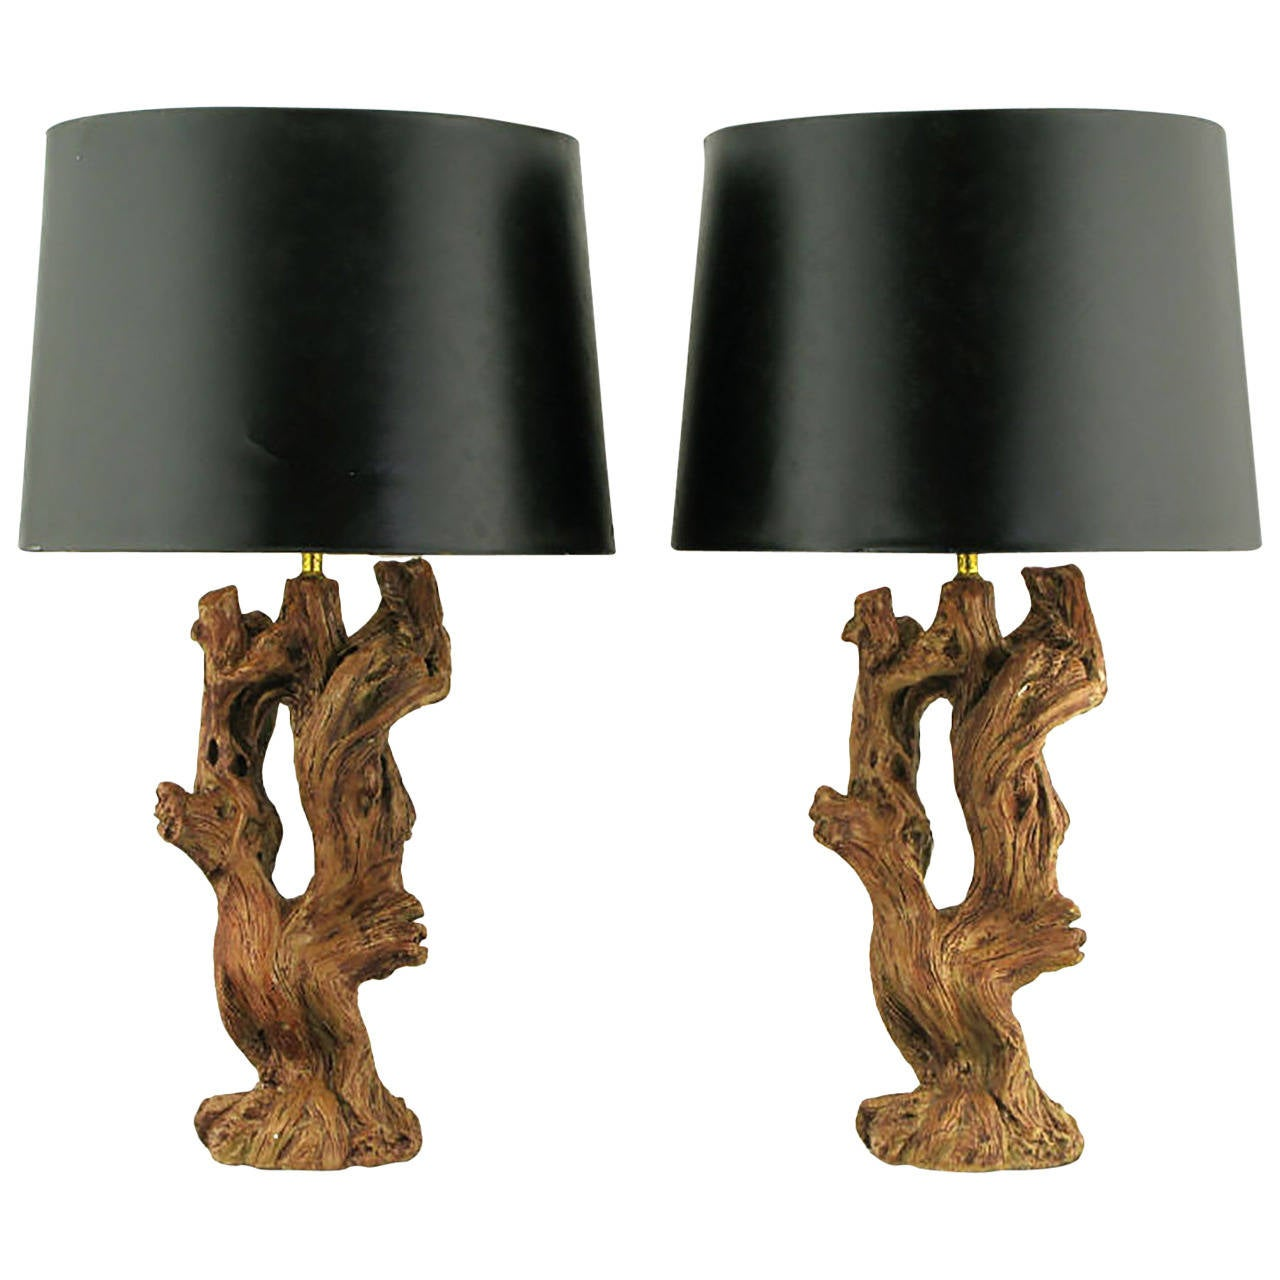 Pair of Ceramic Driftwood-Form Faux Bois Table Lamps